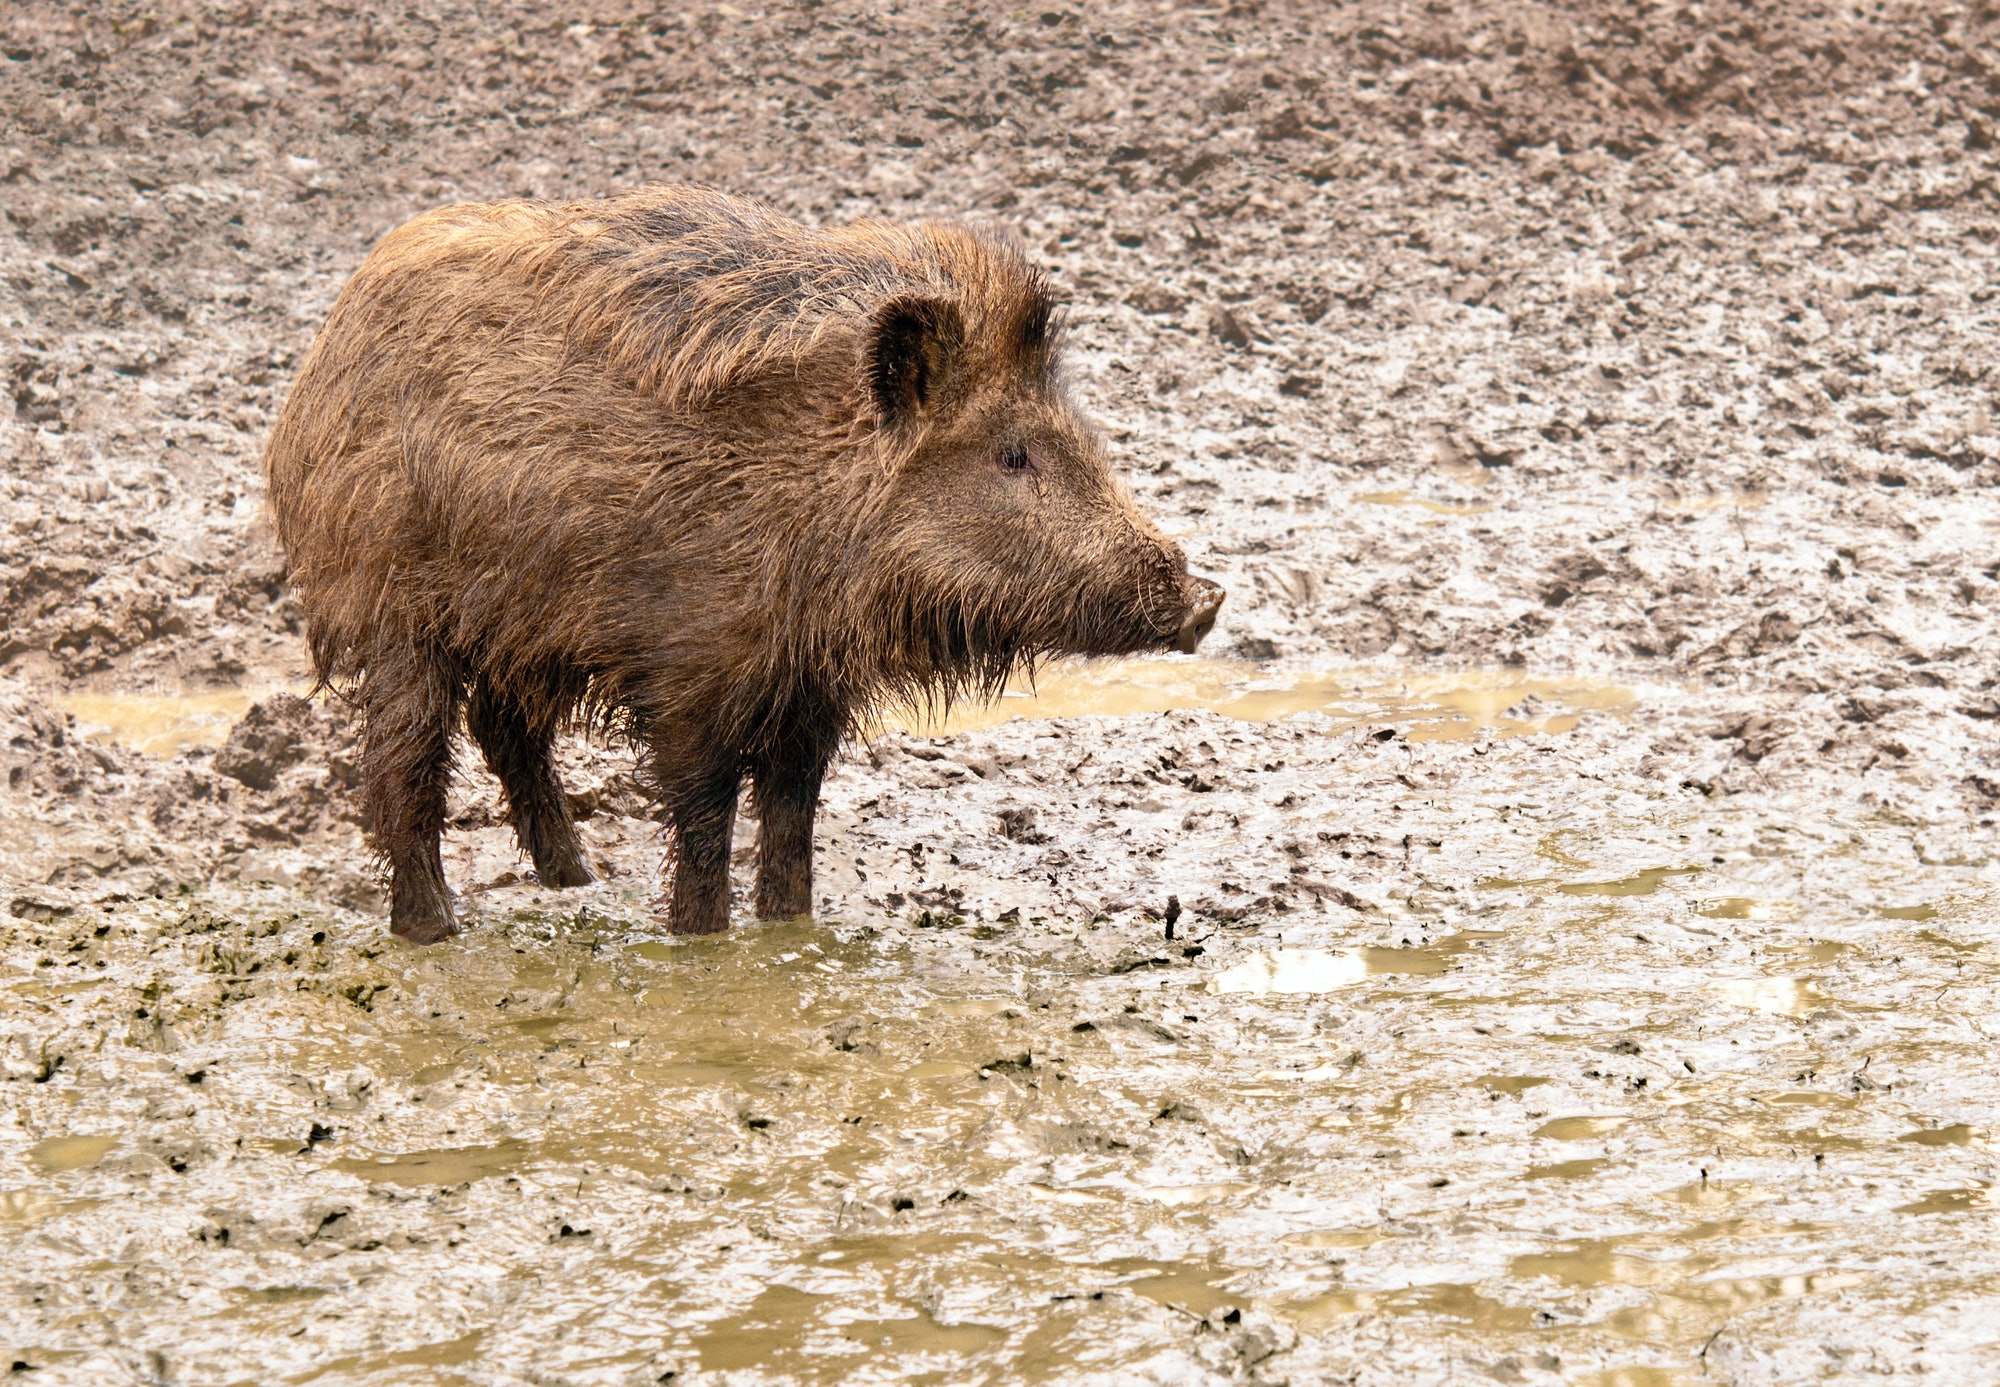 A young wild boar in his environment